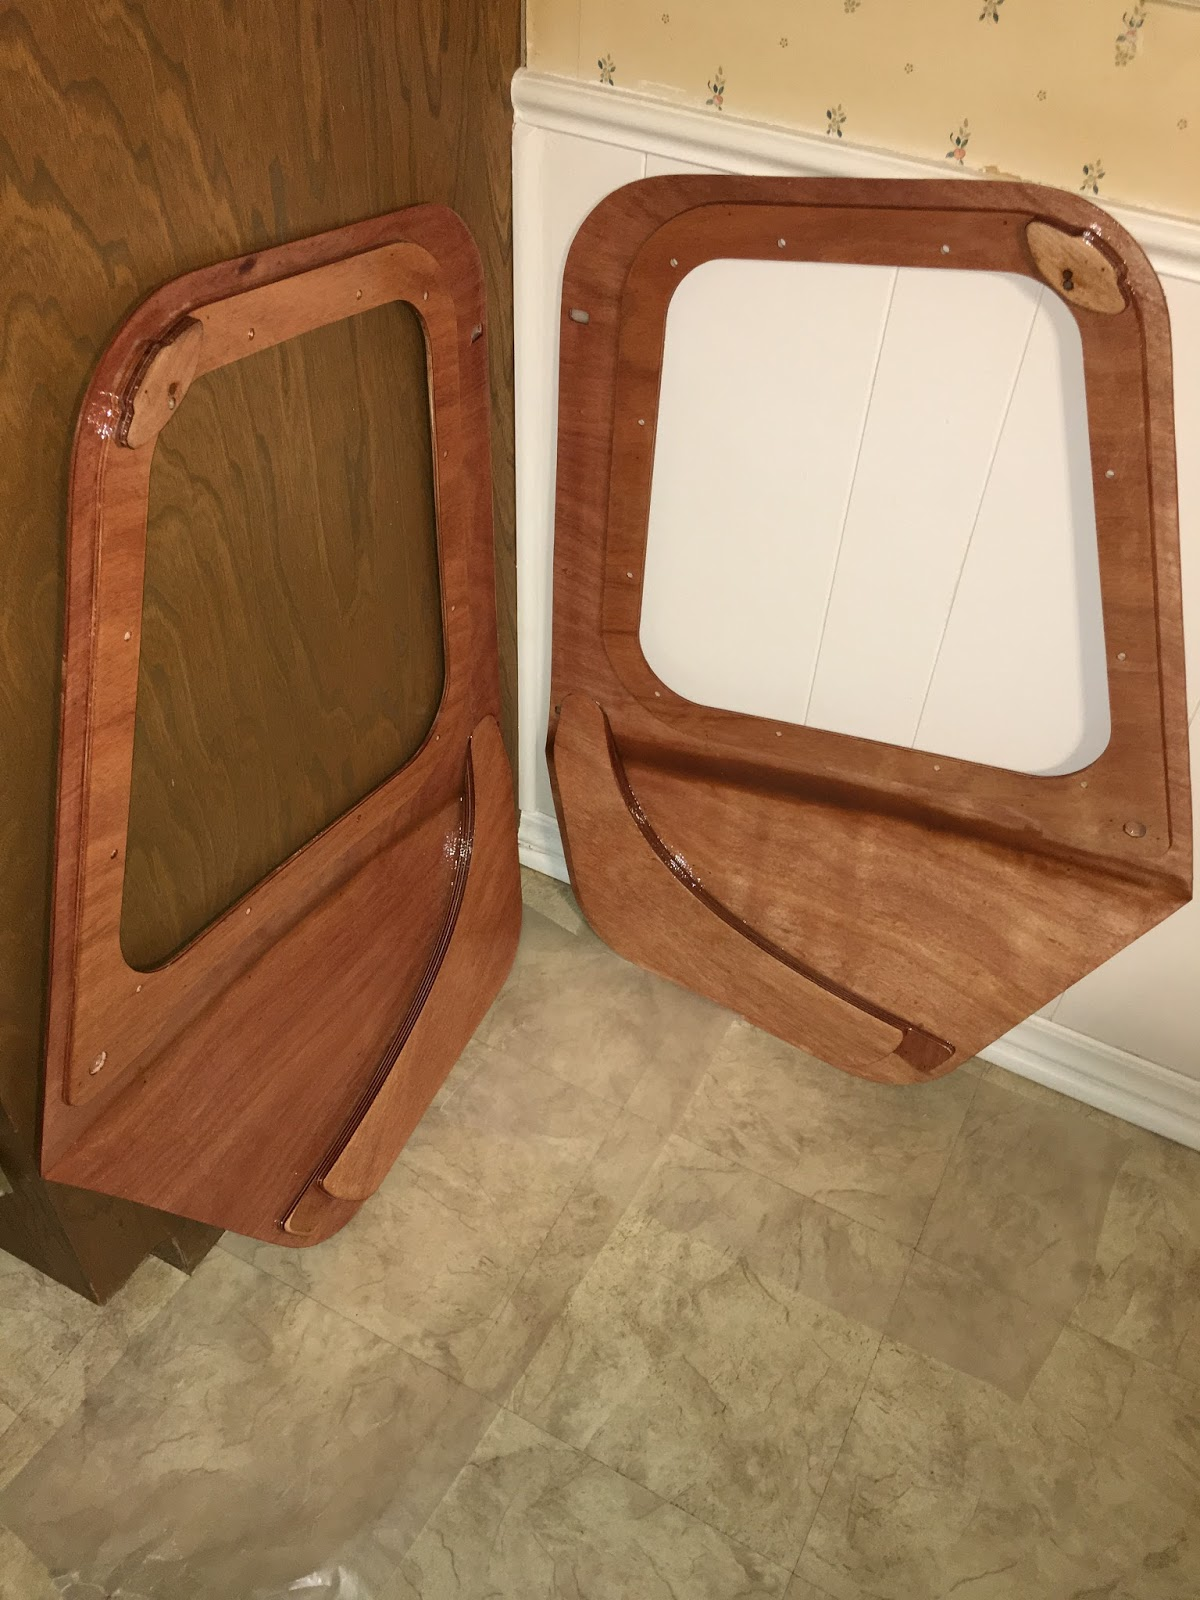 While The First Coat On The Hinges Is Curing I Applied A Second Coat To The Inside Of The Doors. As You Can See All This Work Is Being Allowed To Cure . & Camper Doors Ebay u0026 New Hosetamer Water Hose Bag Caravan Cu0026ing RV ... pezcame.com